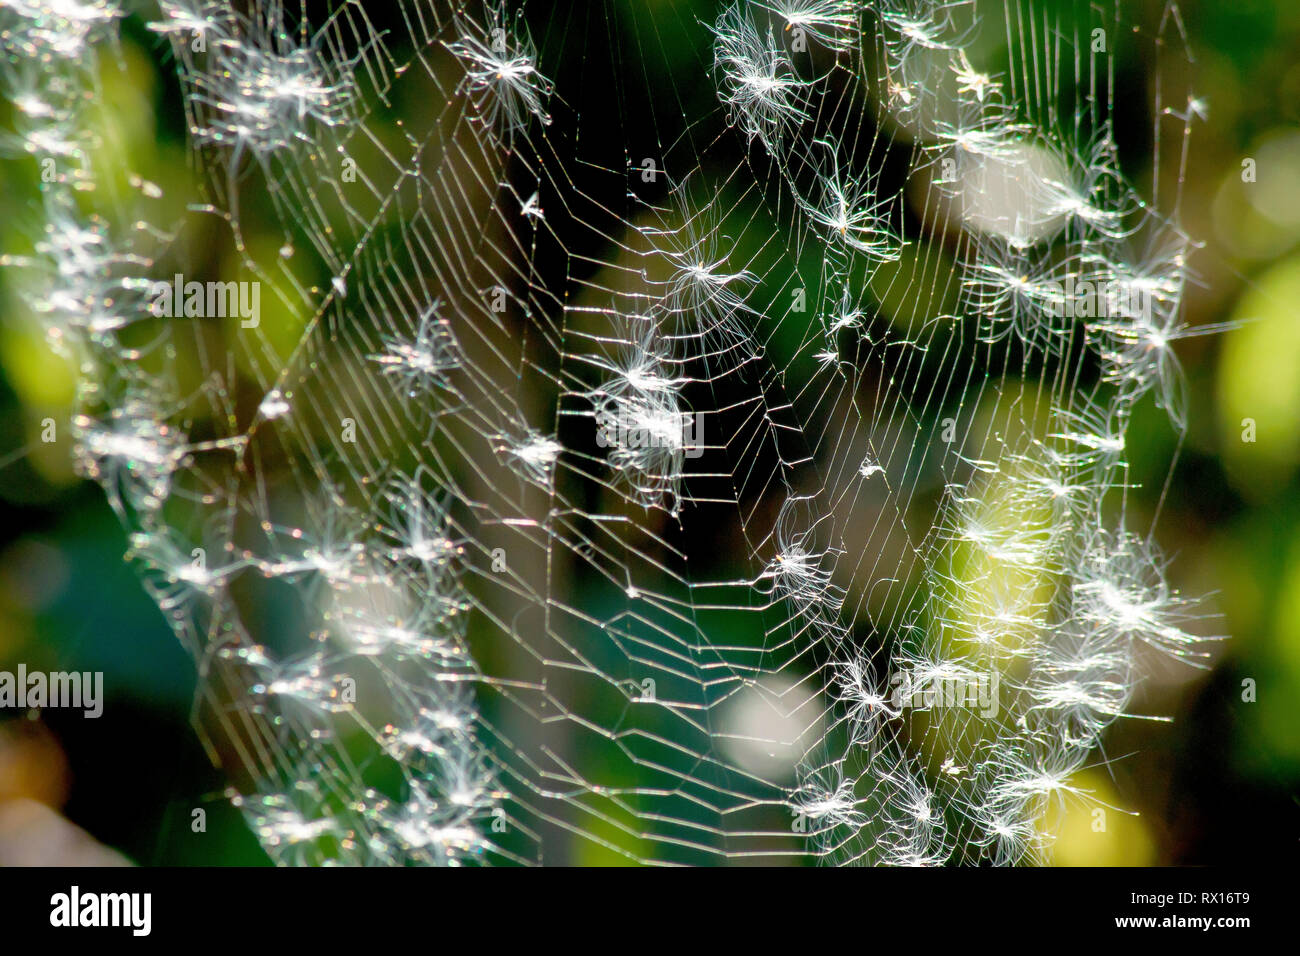 Close up of a back-lit spider's web covered in seeds released from Rosebay Willowherb (epilobium angustifolium). Stock Photo